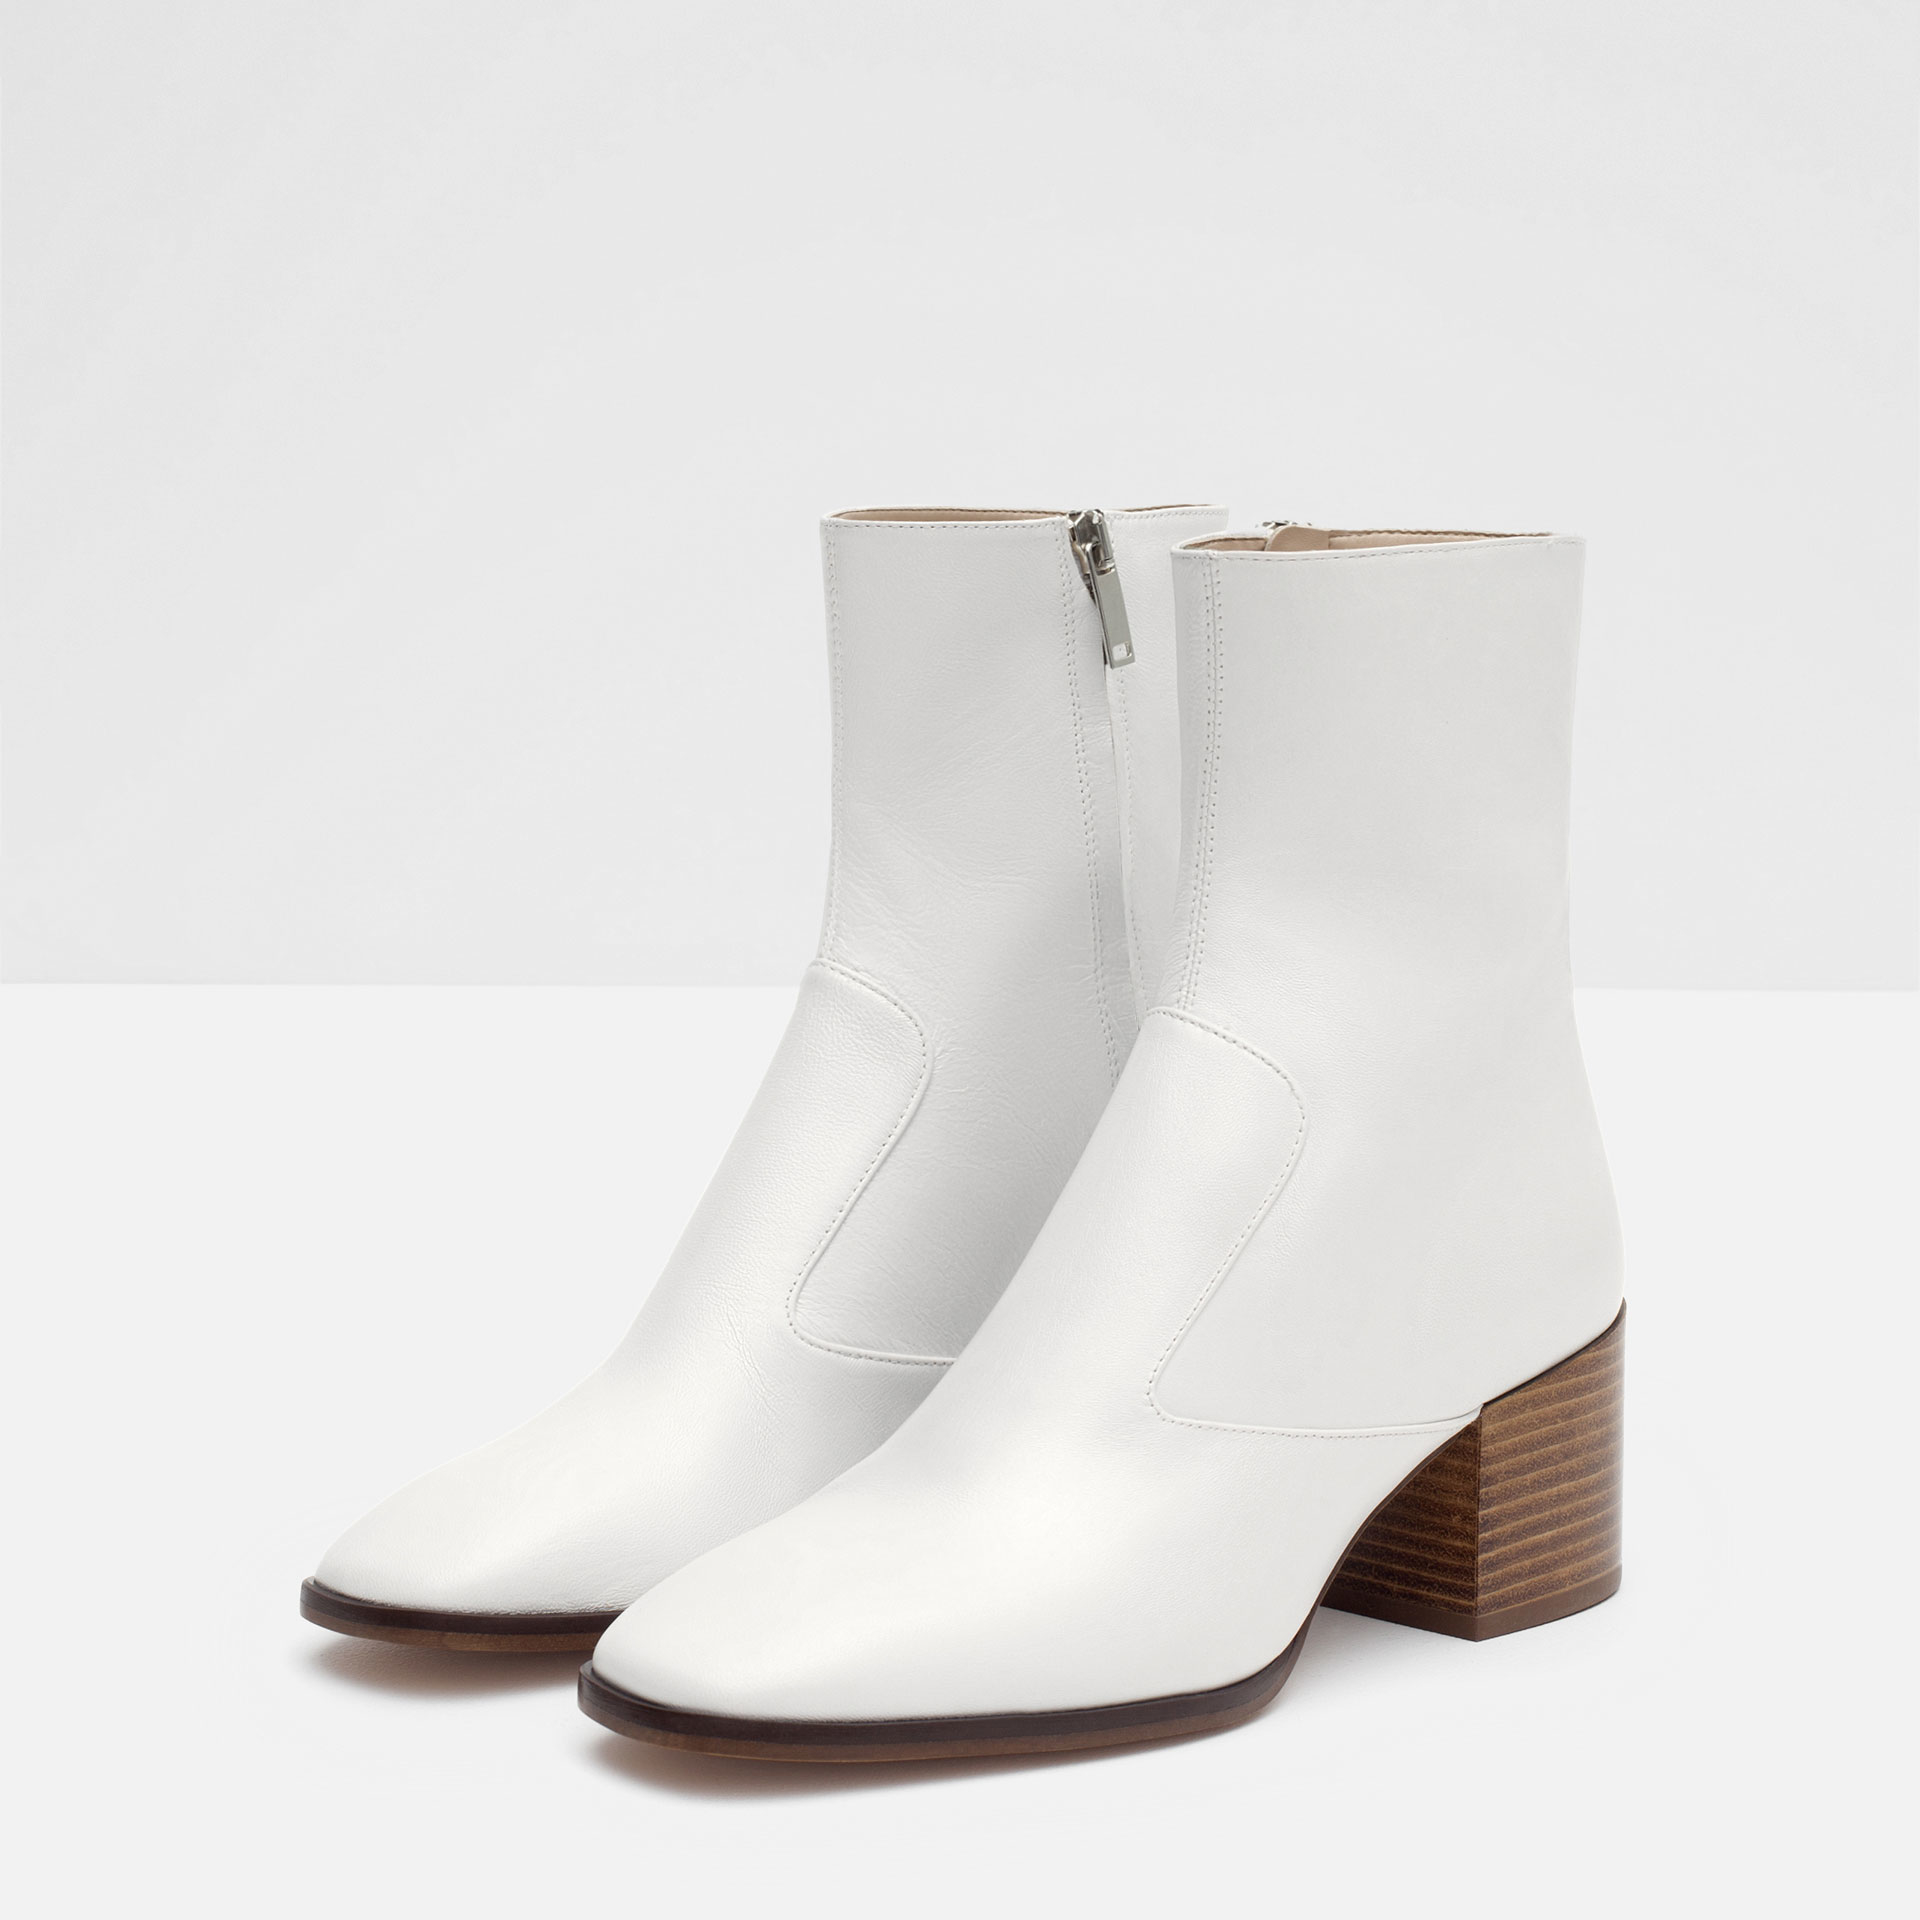 We've got great deals on white leather ankle boots from Giuseppe Zanotti.